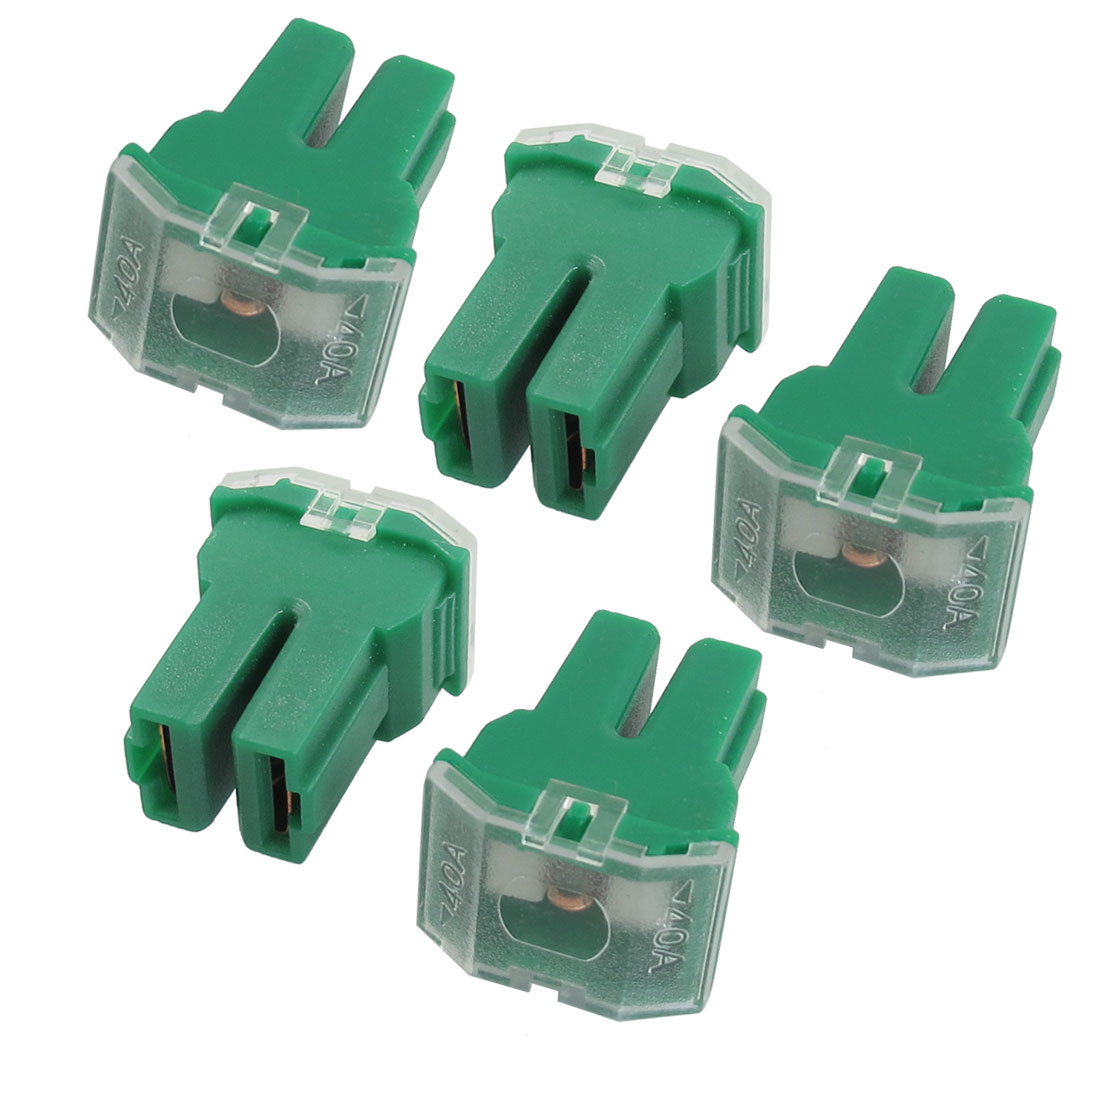 5 Pcs 40A Green PAL Pacific Type Female Slow Blow Fuse for Car Auto